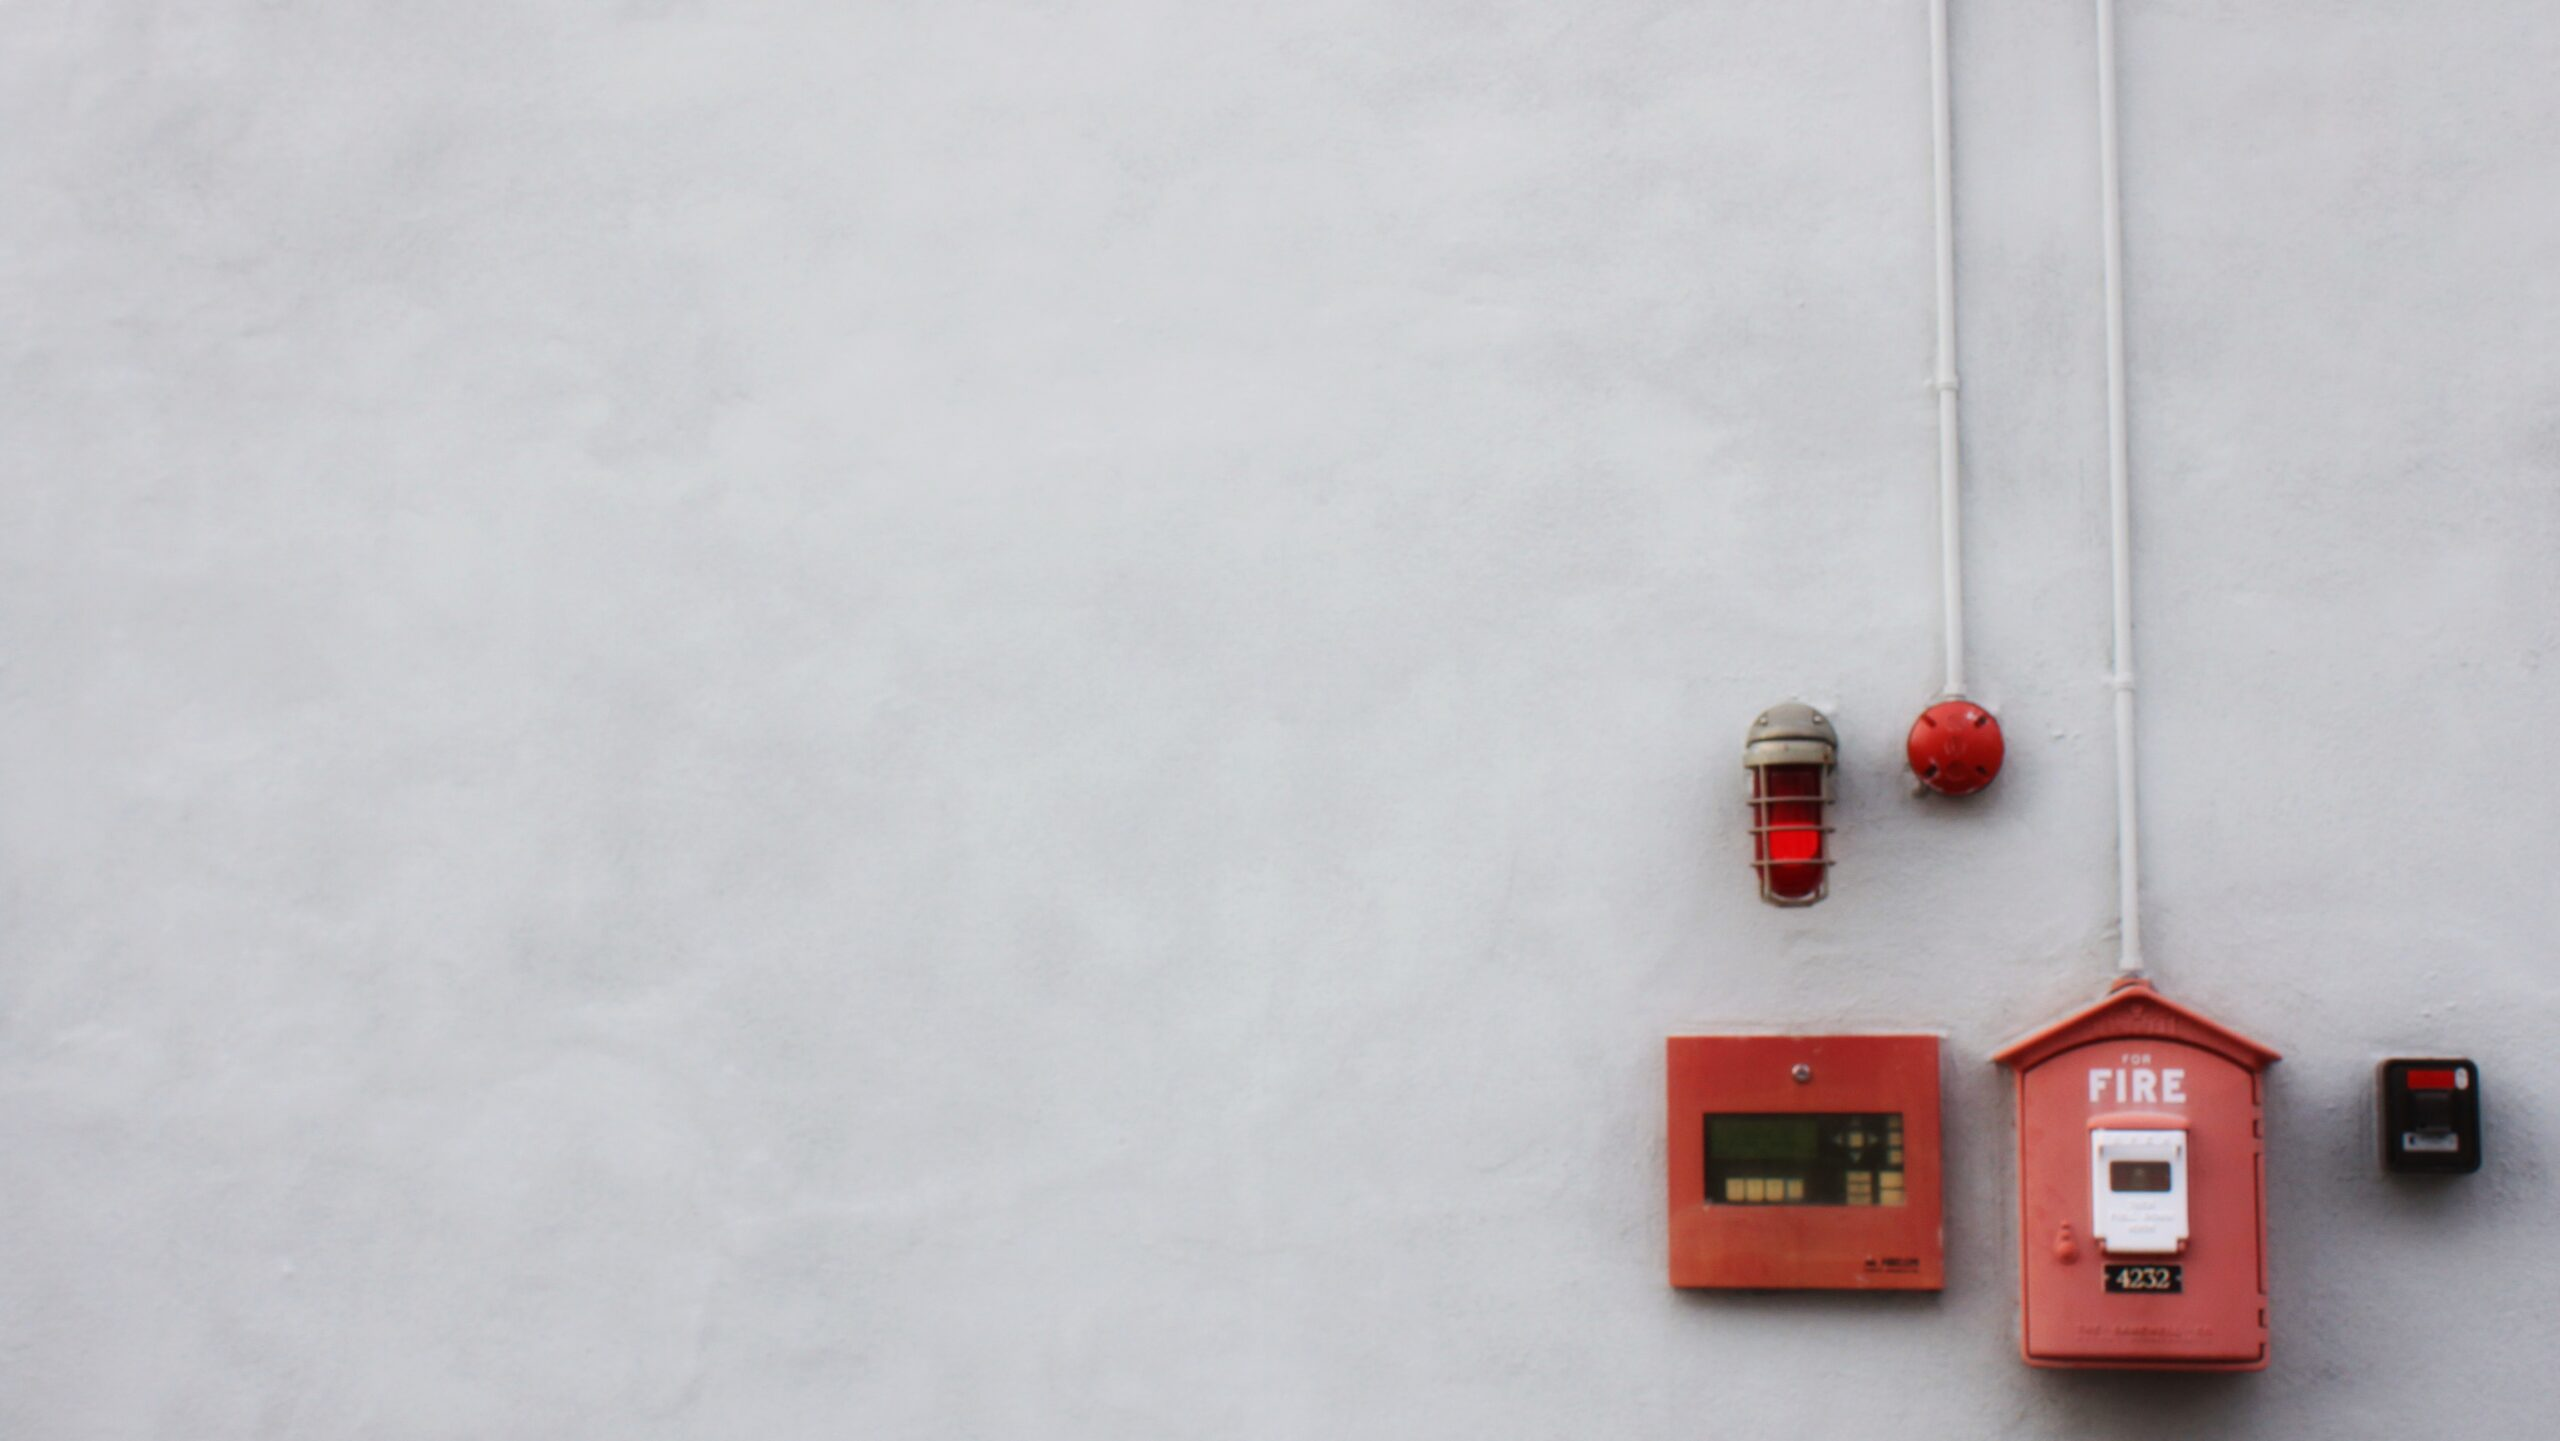 fire-alarm-two-essential-tips-for-an-epic-story